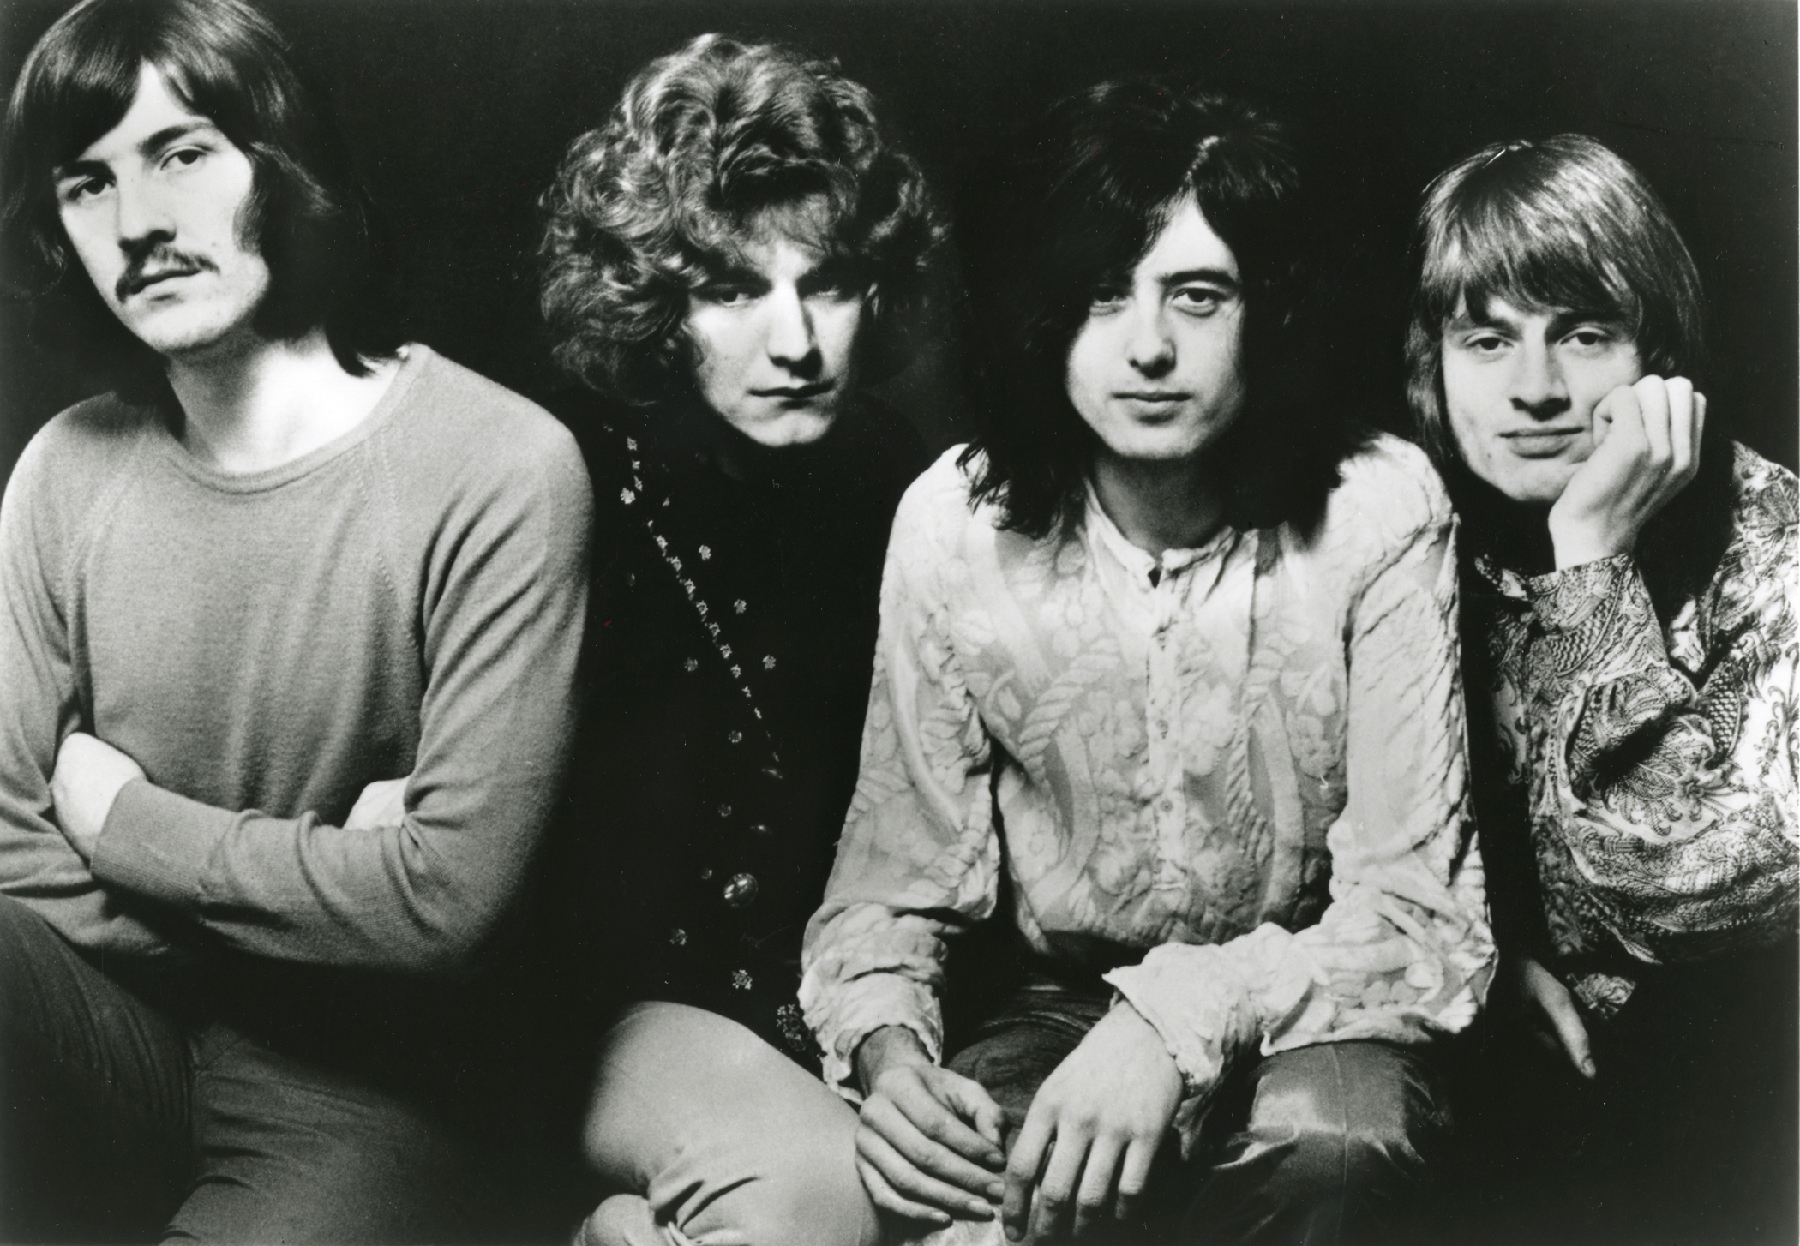 Led Zeppelin to Reissue First 3 LPs With Unreleased Songs